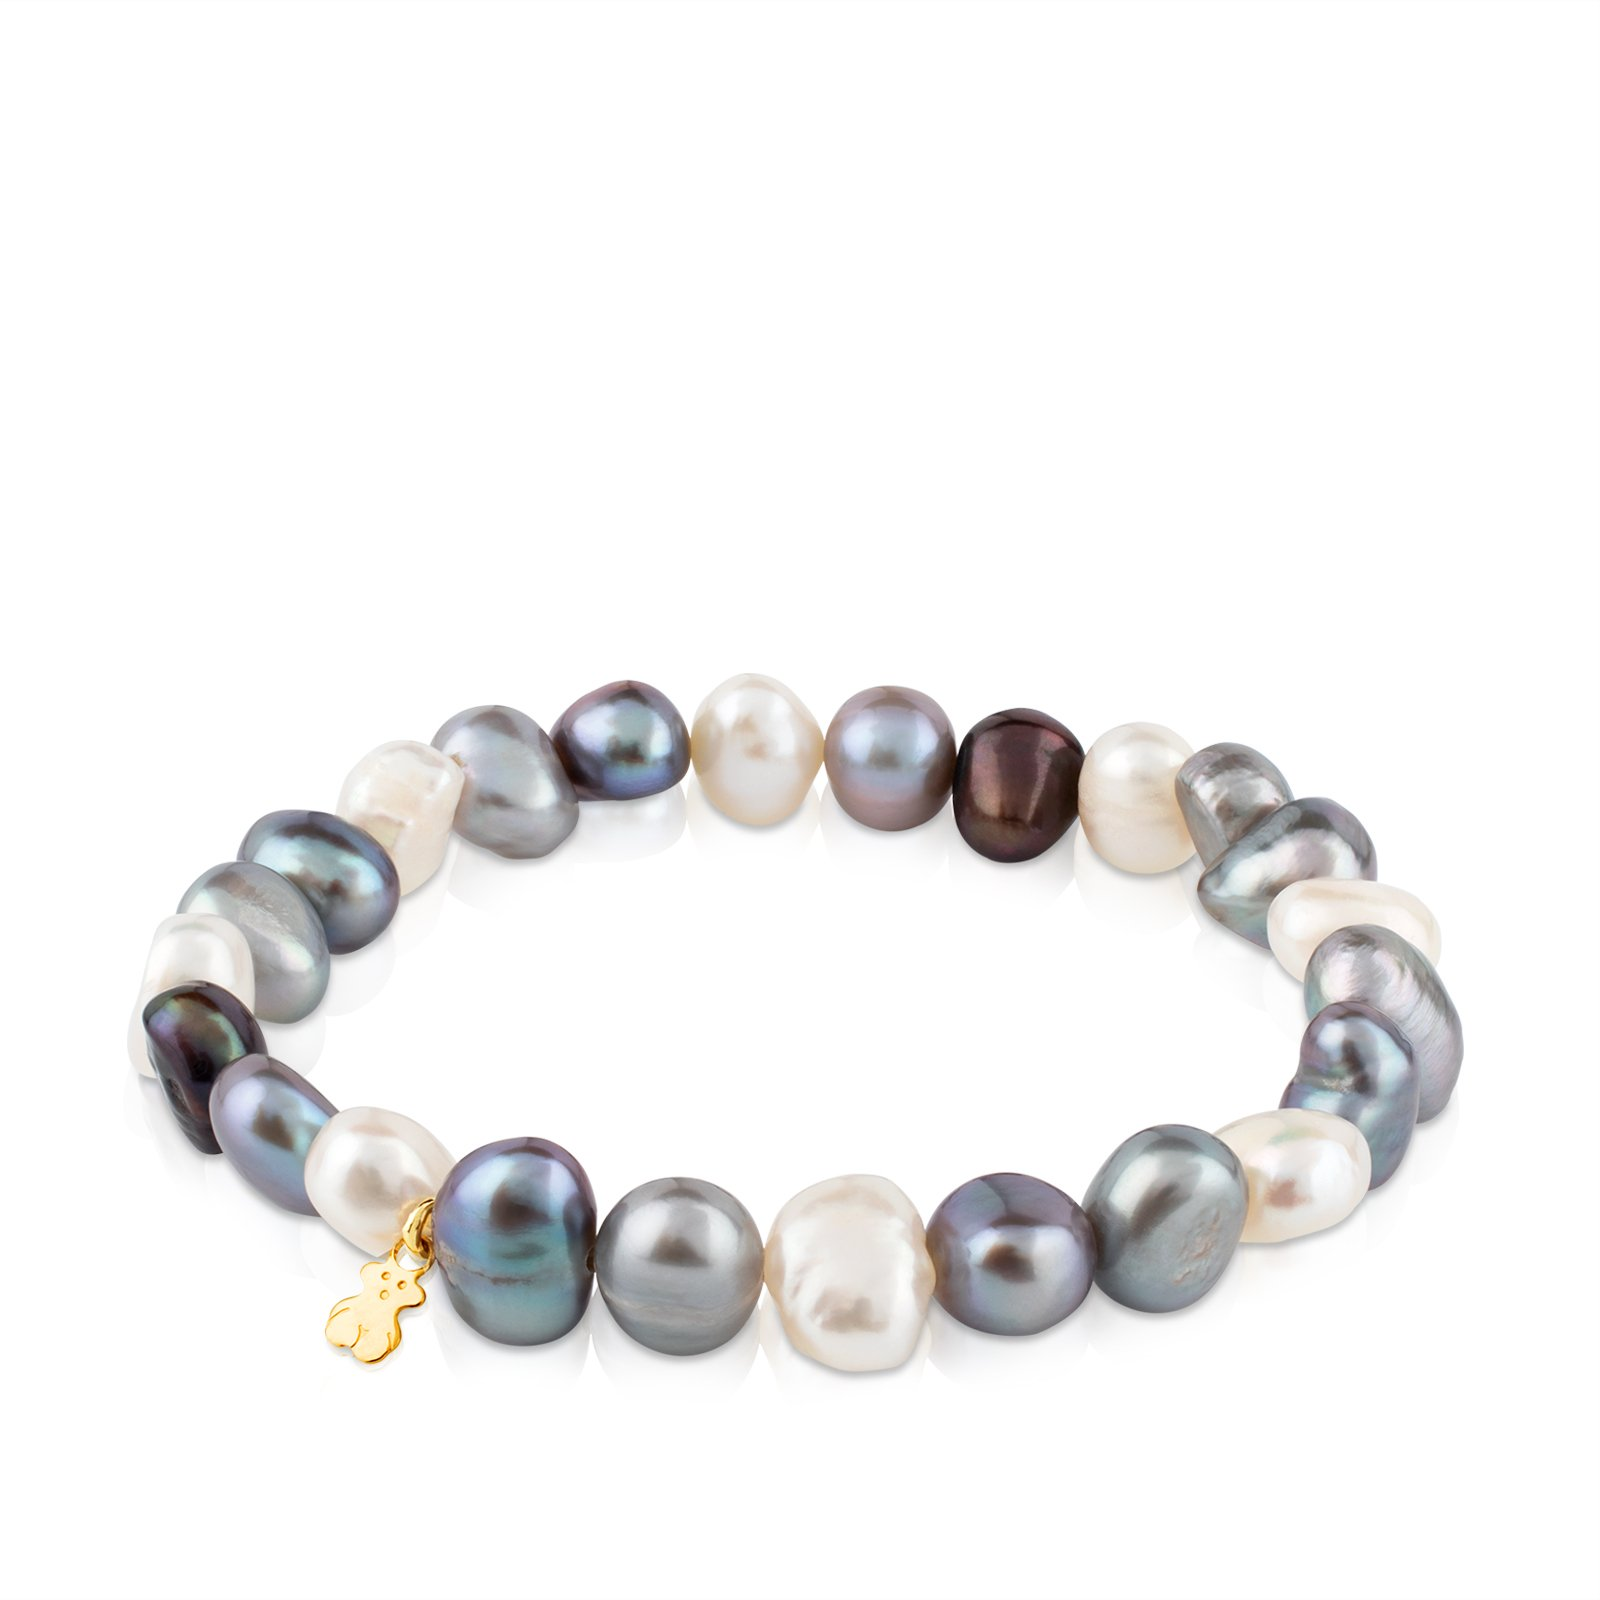 TOUS Sweet Dolls - Bracelet of 0.8 cm Baroque Pearls and 18k Yellow Gold - Length: 17.5 cm by TOUS